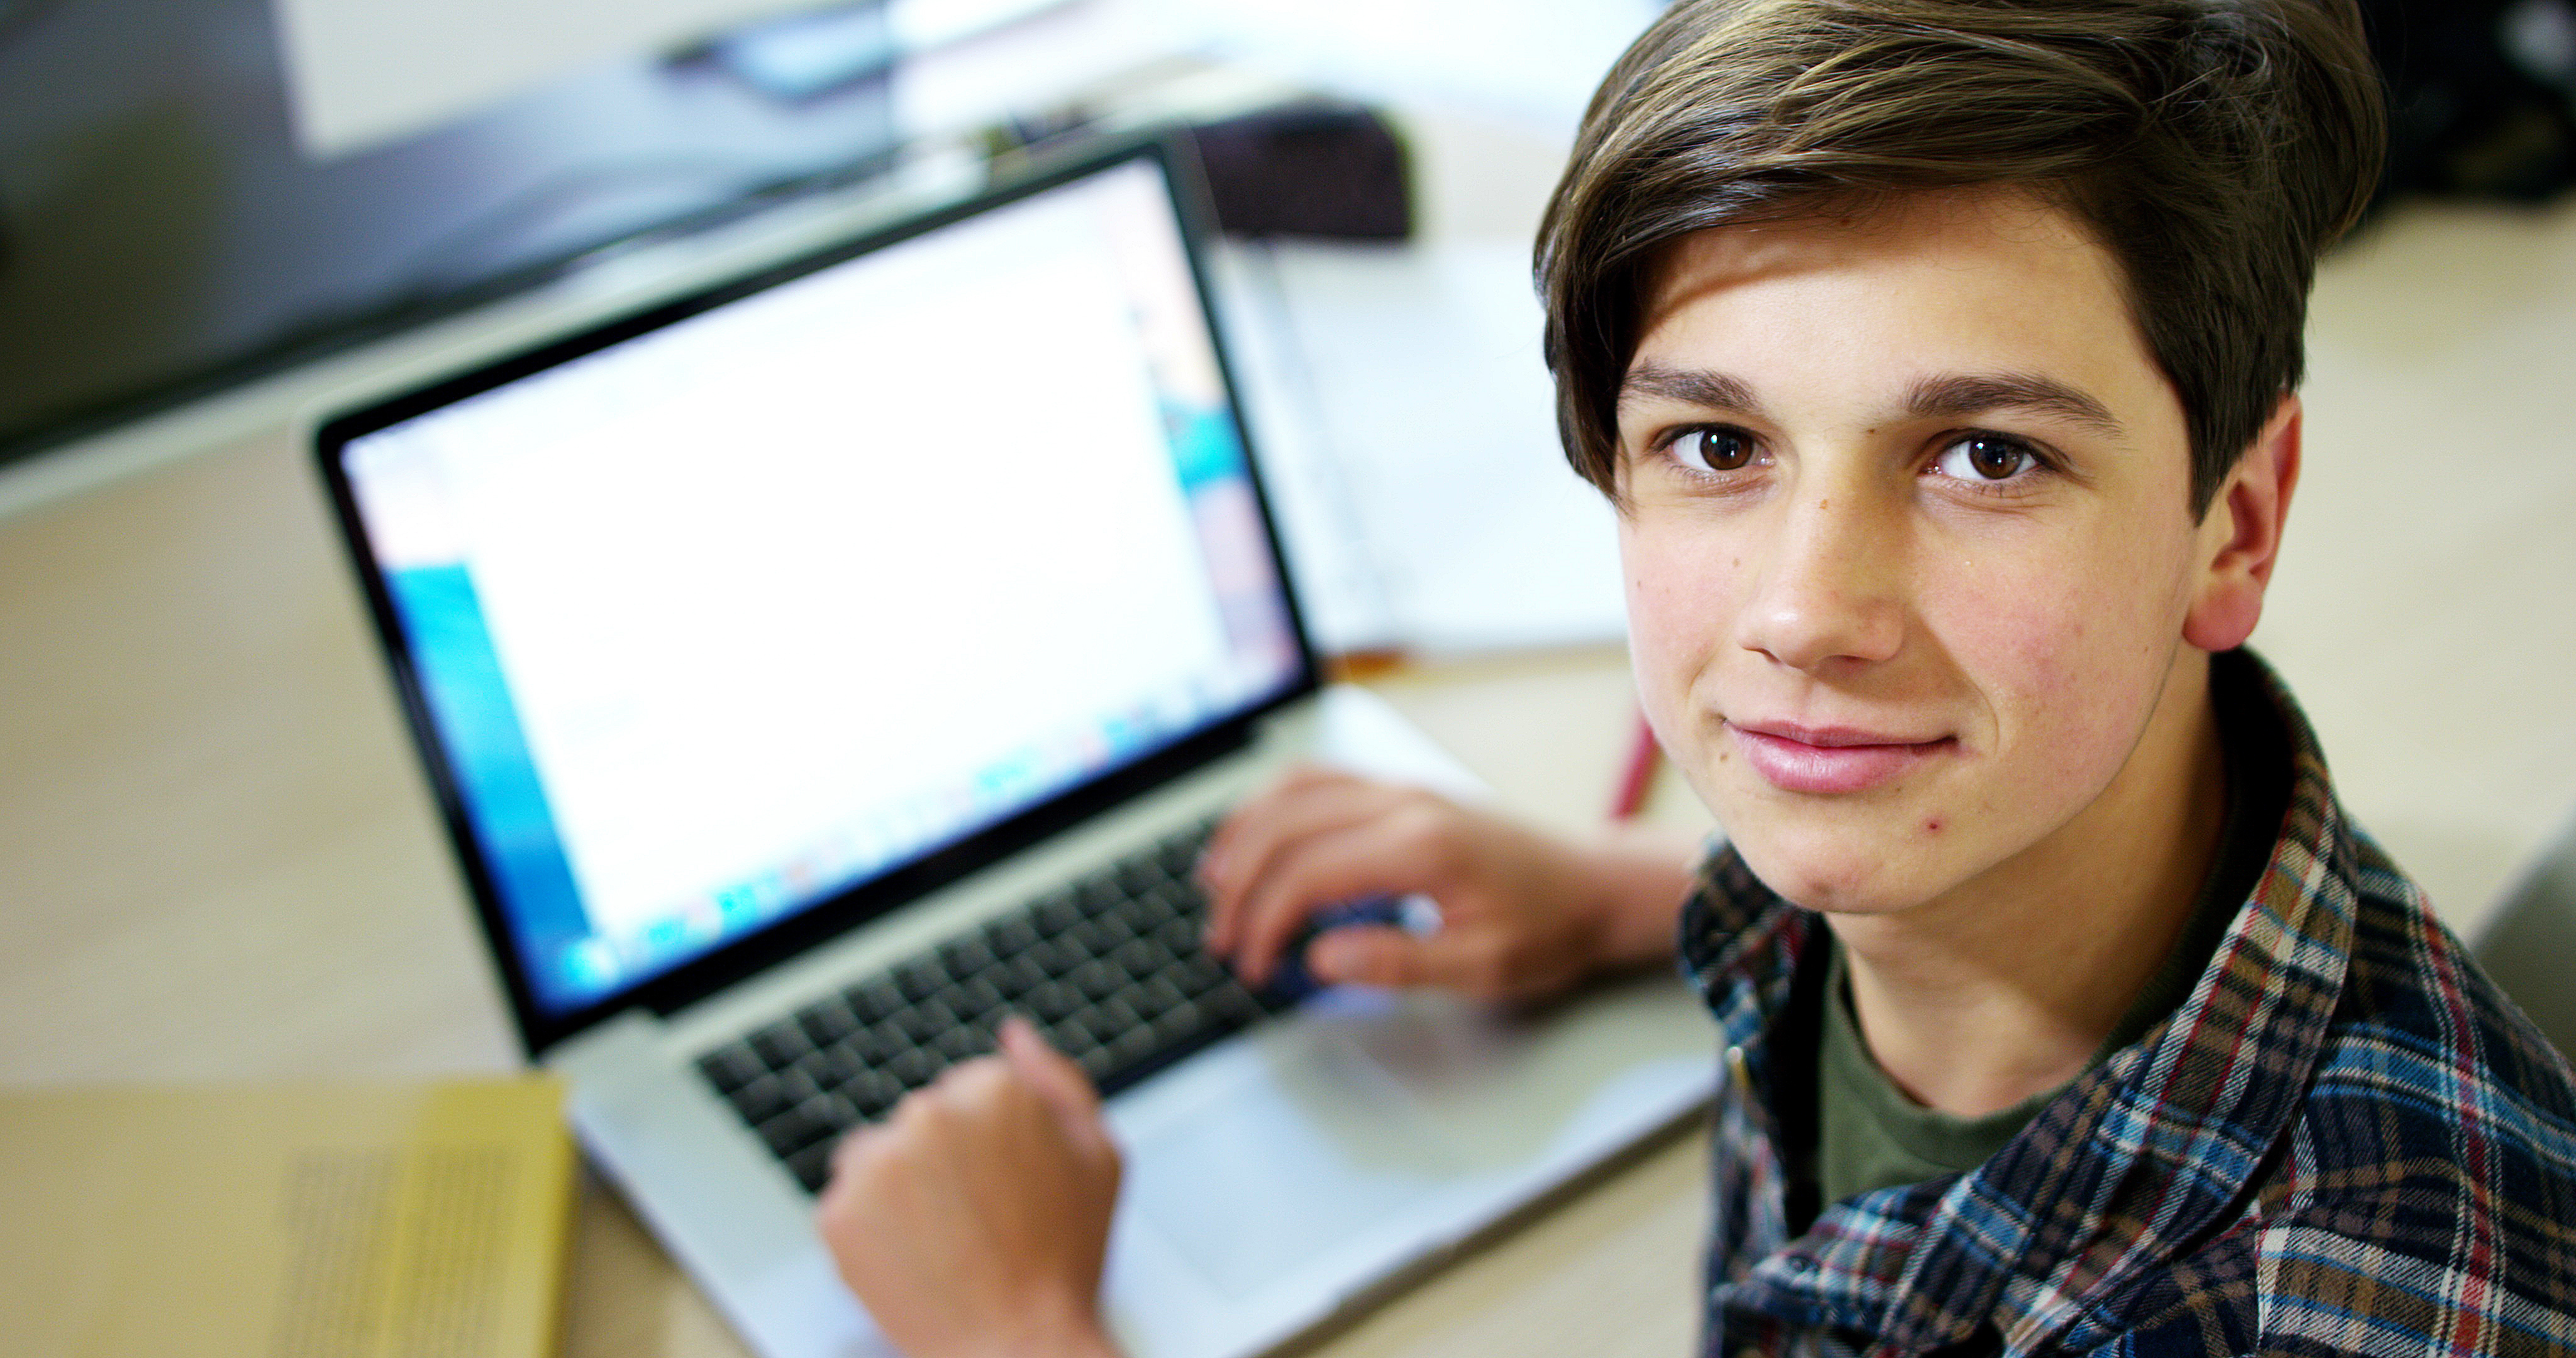 Young boy student, studying computer and